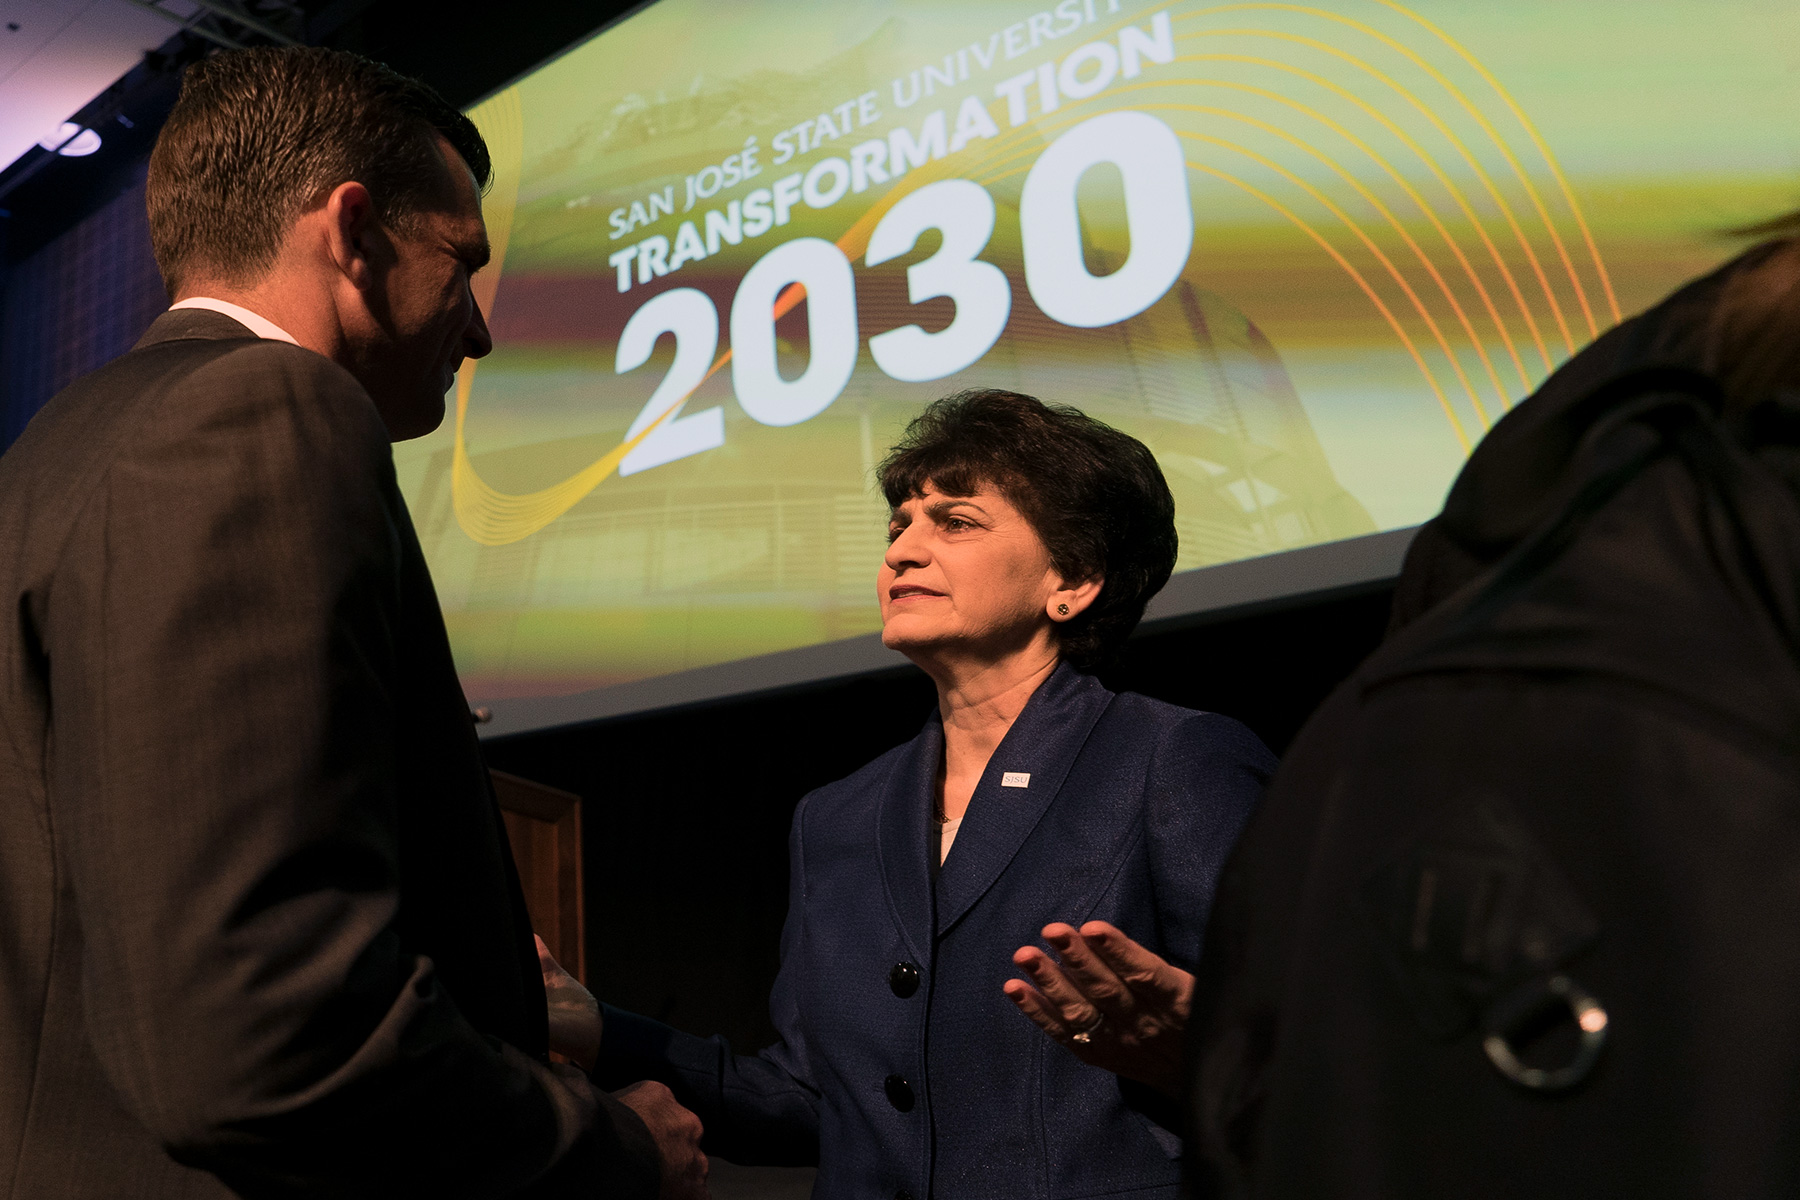 SJSU President at Transformation 2030 event